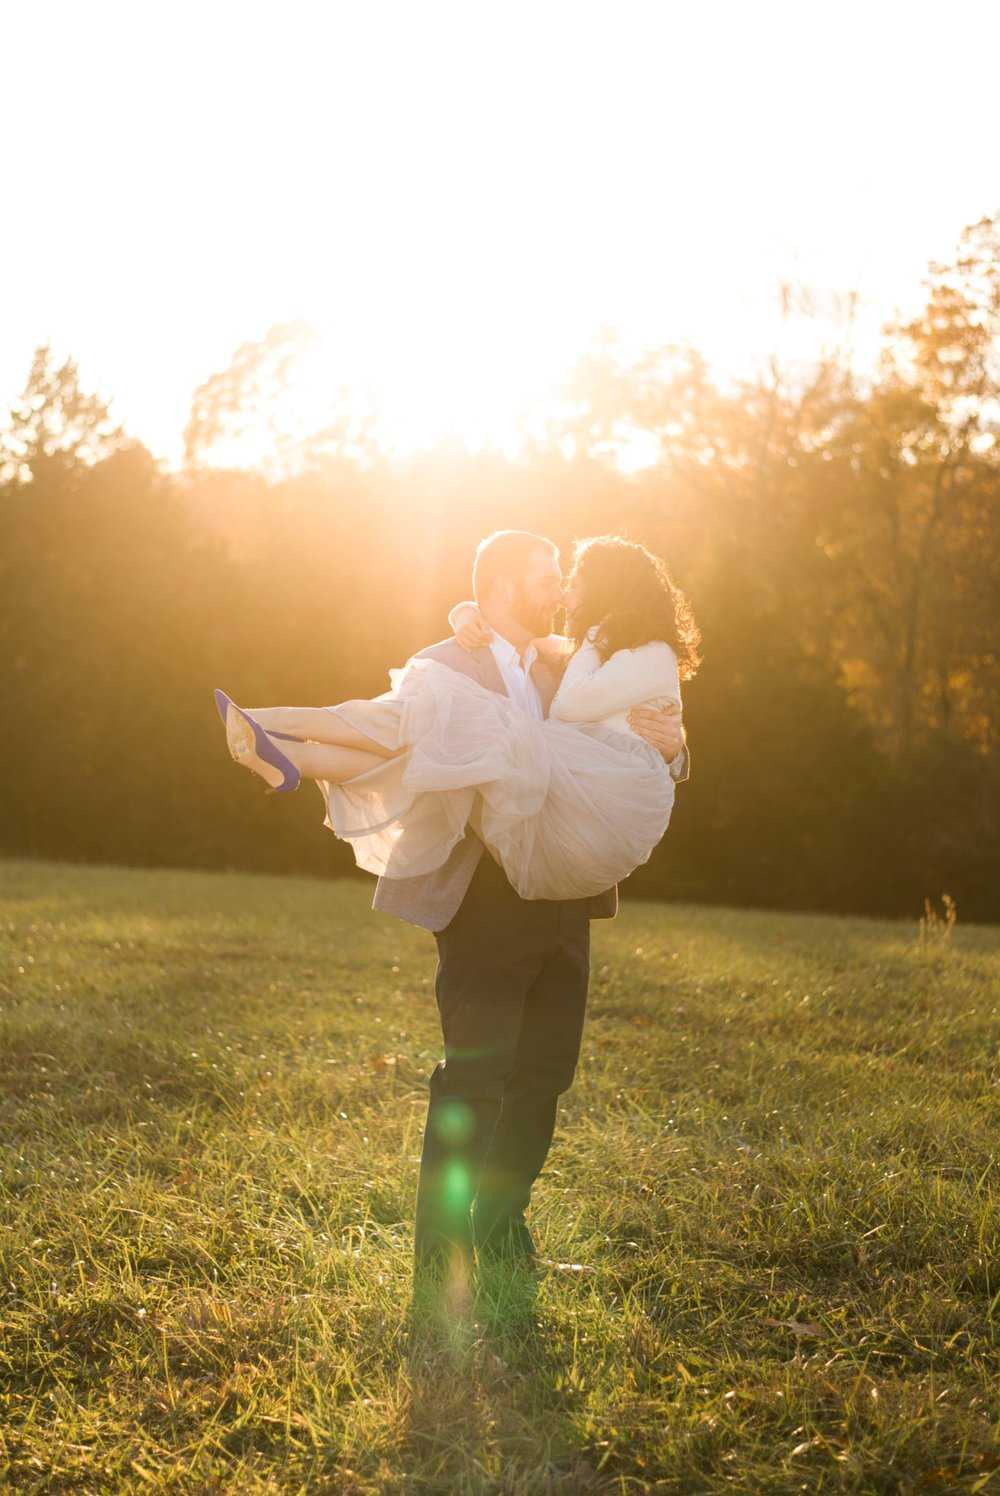 SorellaFarms_EngagementSession_VirginiaweddingPhotographer 50.jpg